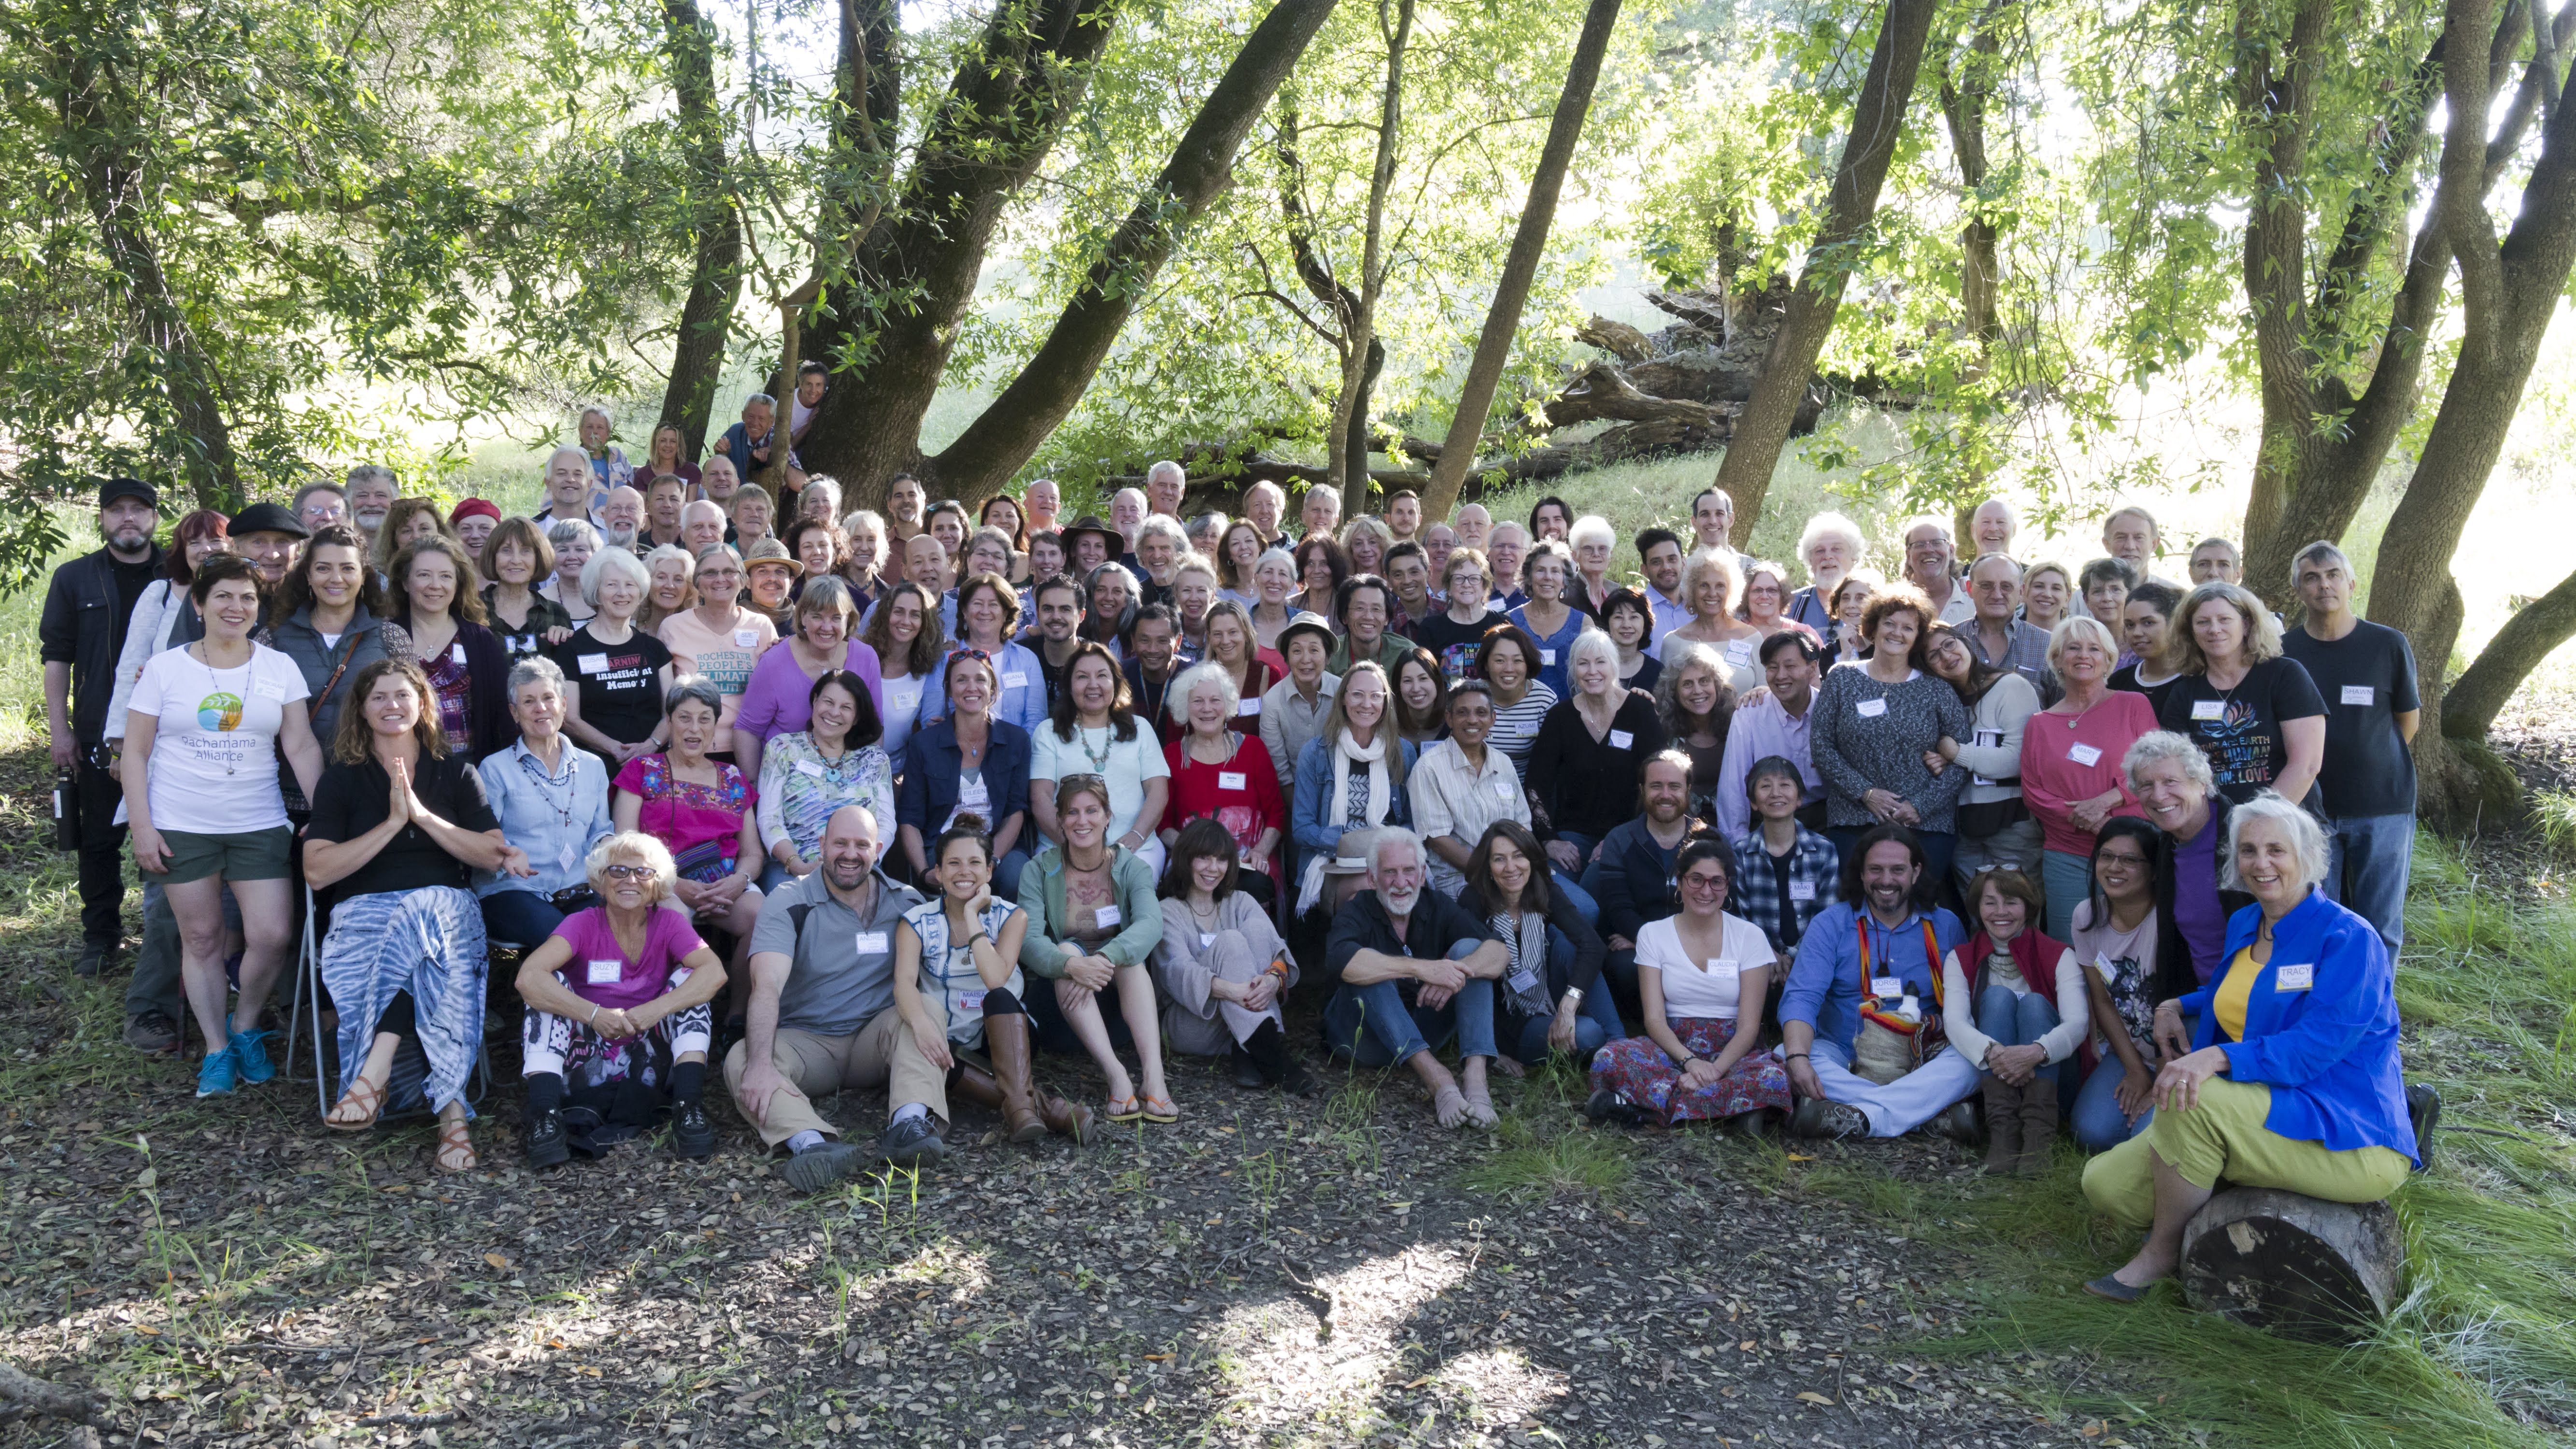 Sharing a Sacred Space: The 2018 Pachamama Alliance Global Gathering